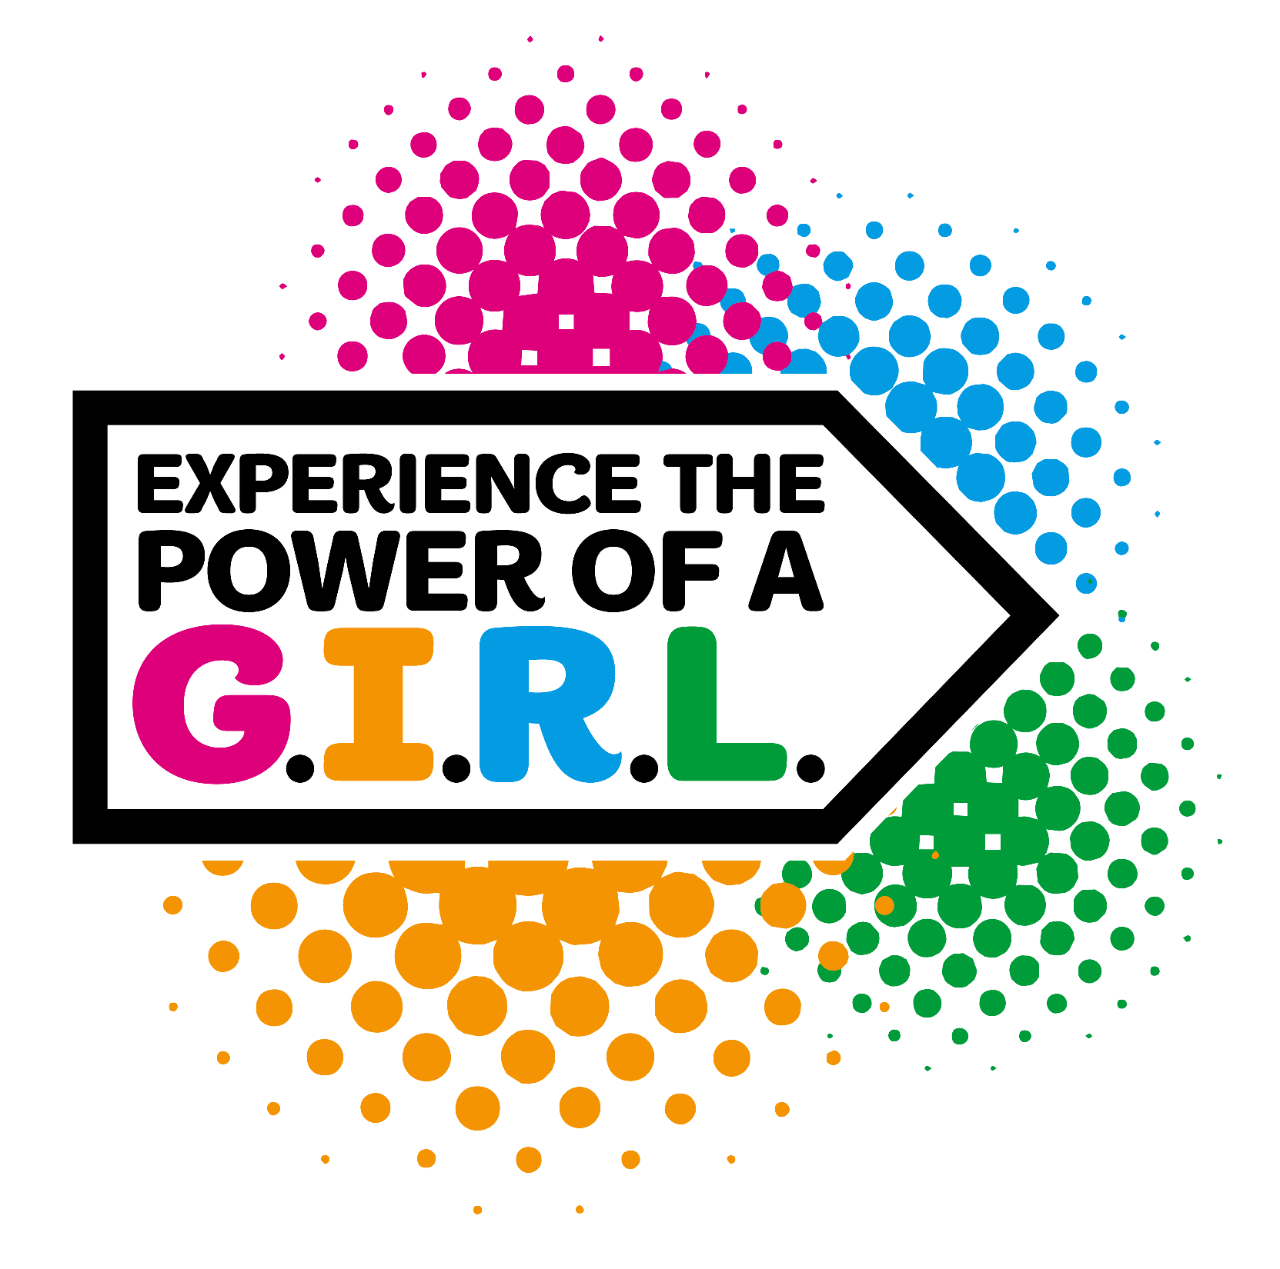 Experience the power of a G.I.R.L.